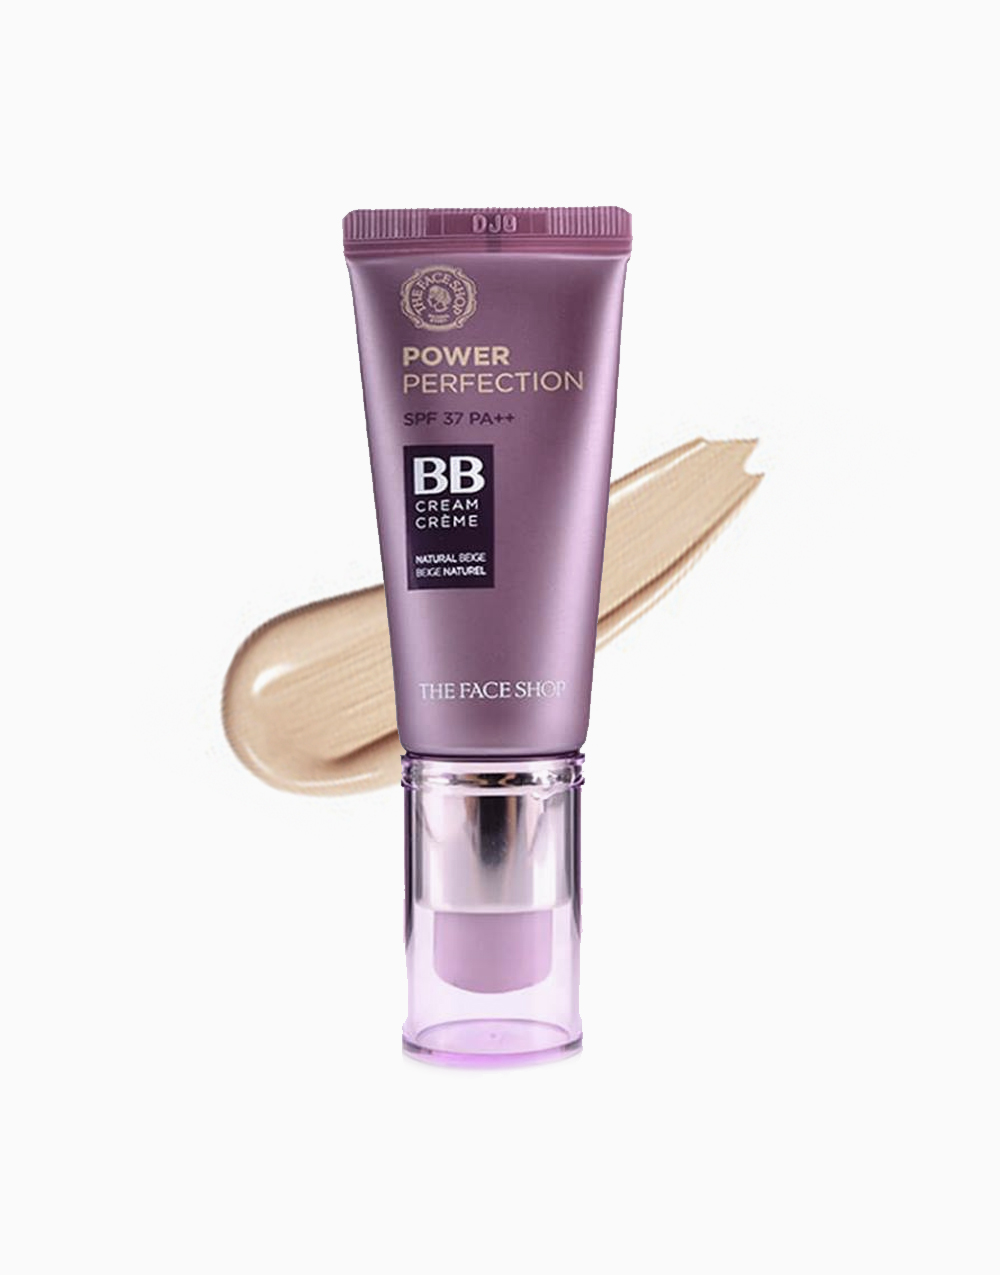 Power Perfection BB Cream SPF37 PA++ by The Face Shop | V201